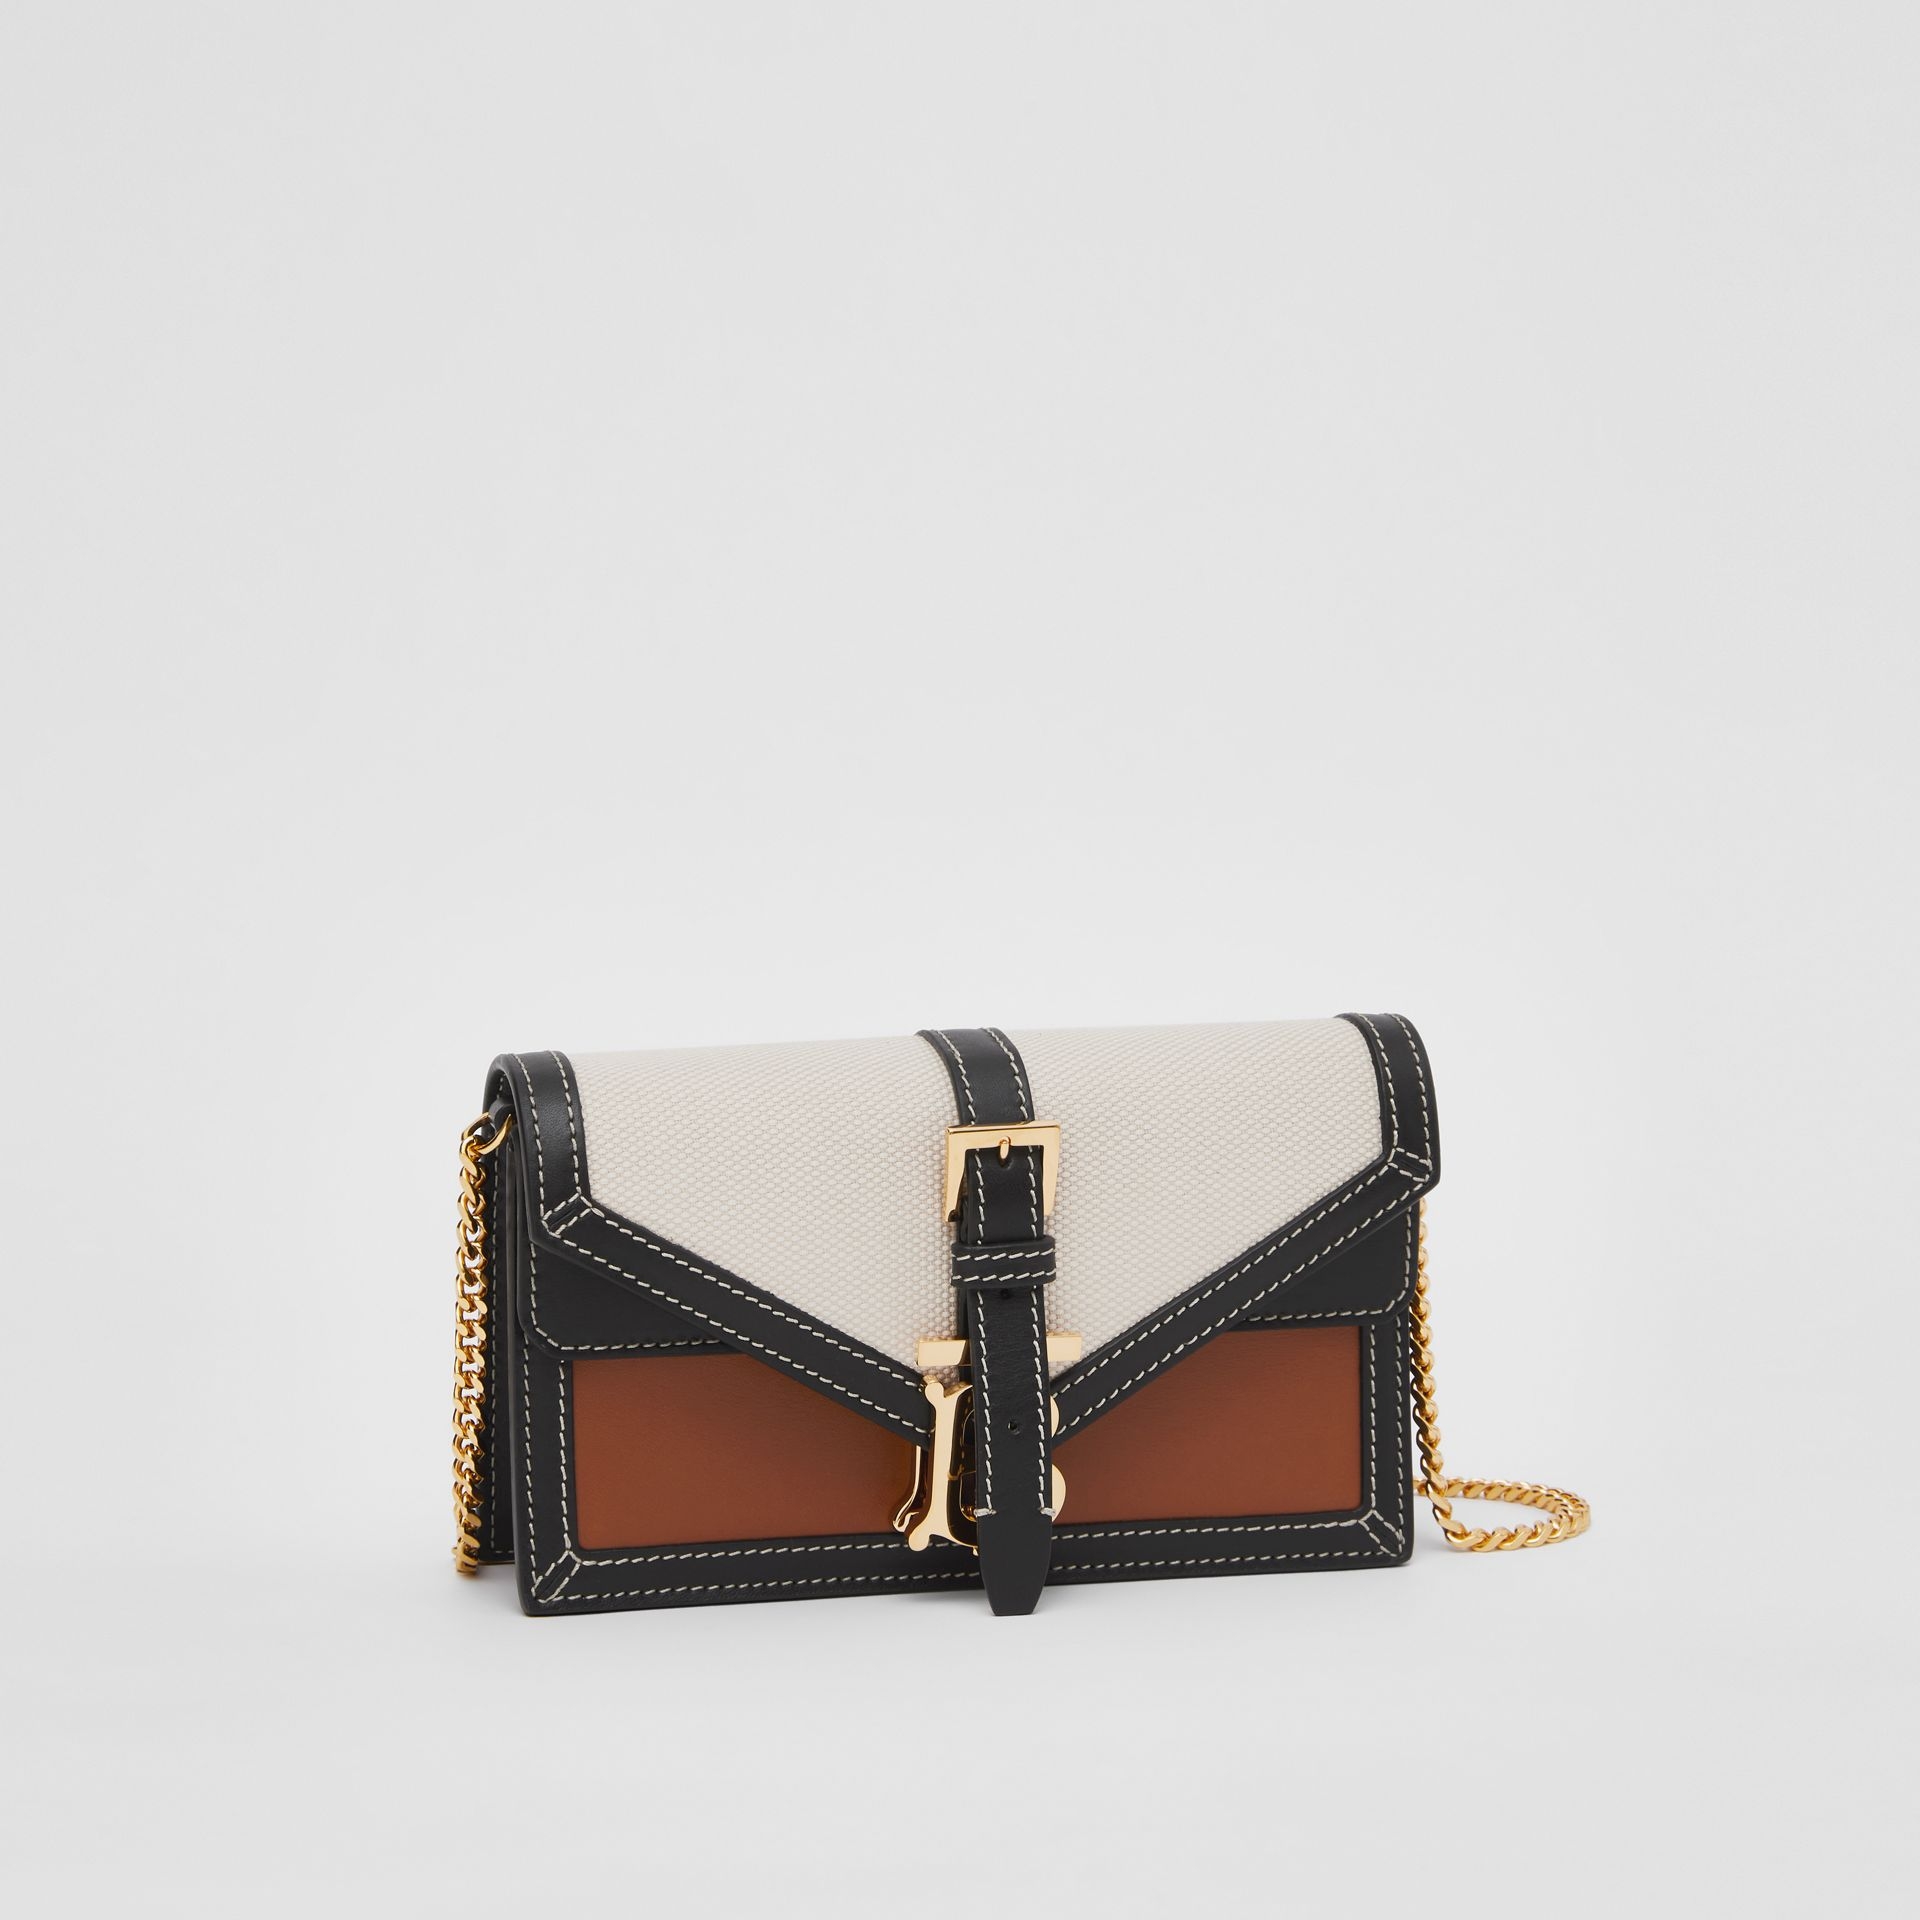 Mini Canvas and Leather TB Envelope Clutch in Tan - Women | Burberry Australia - gallery image 4